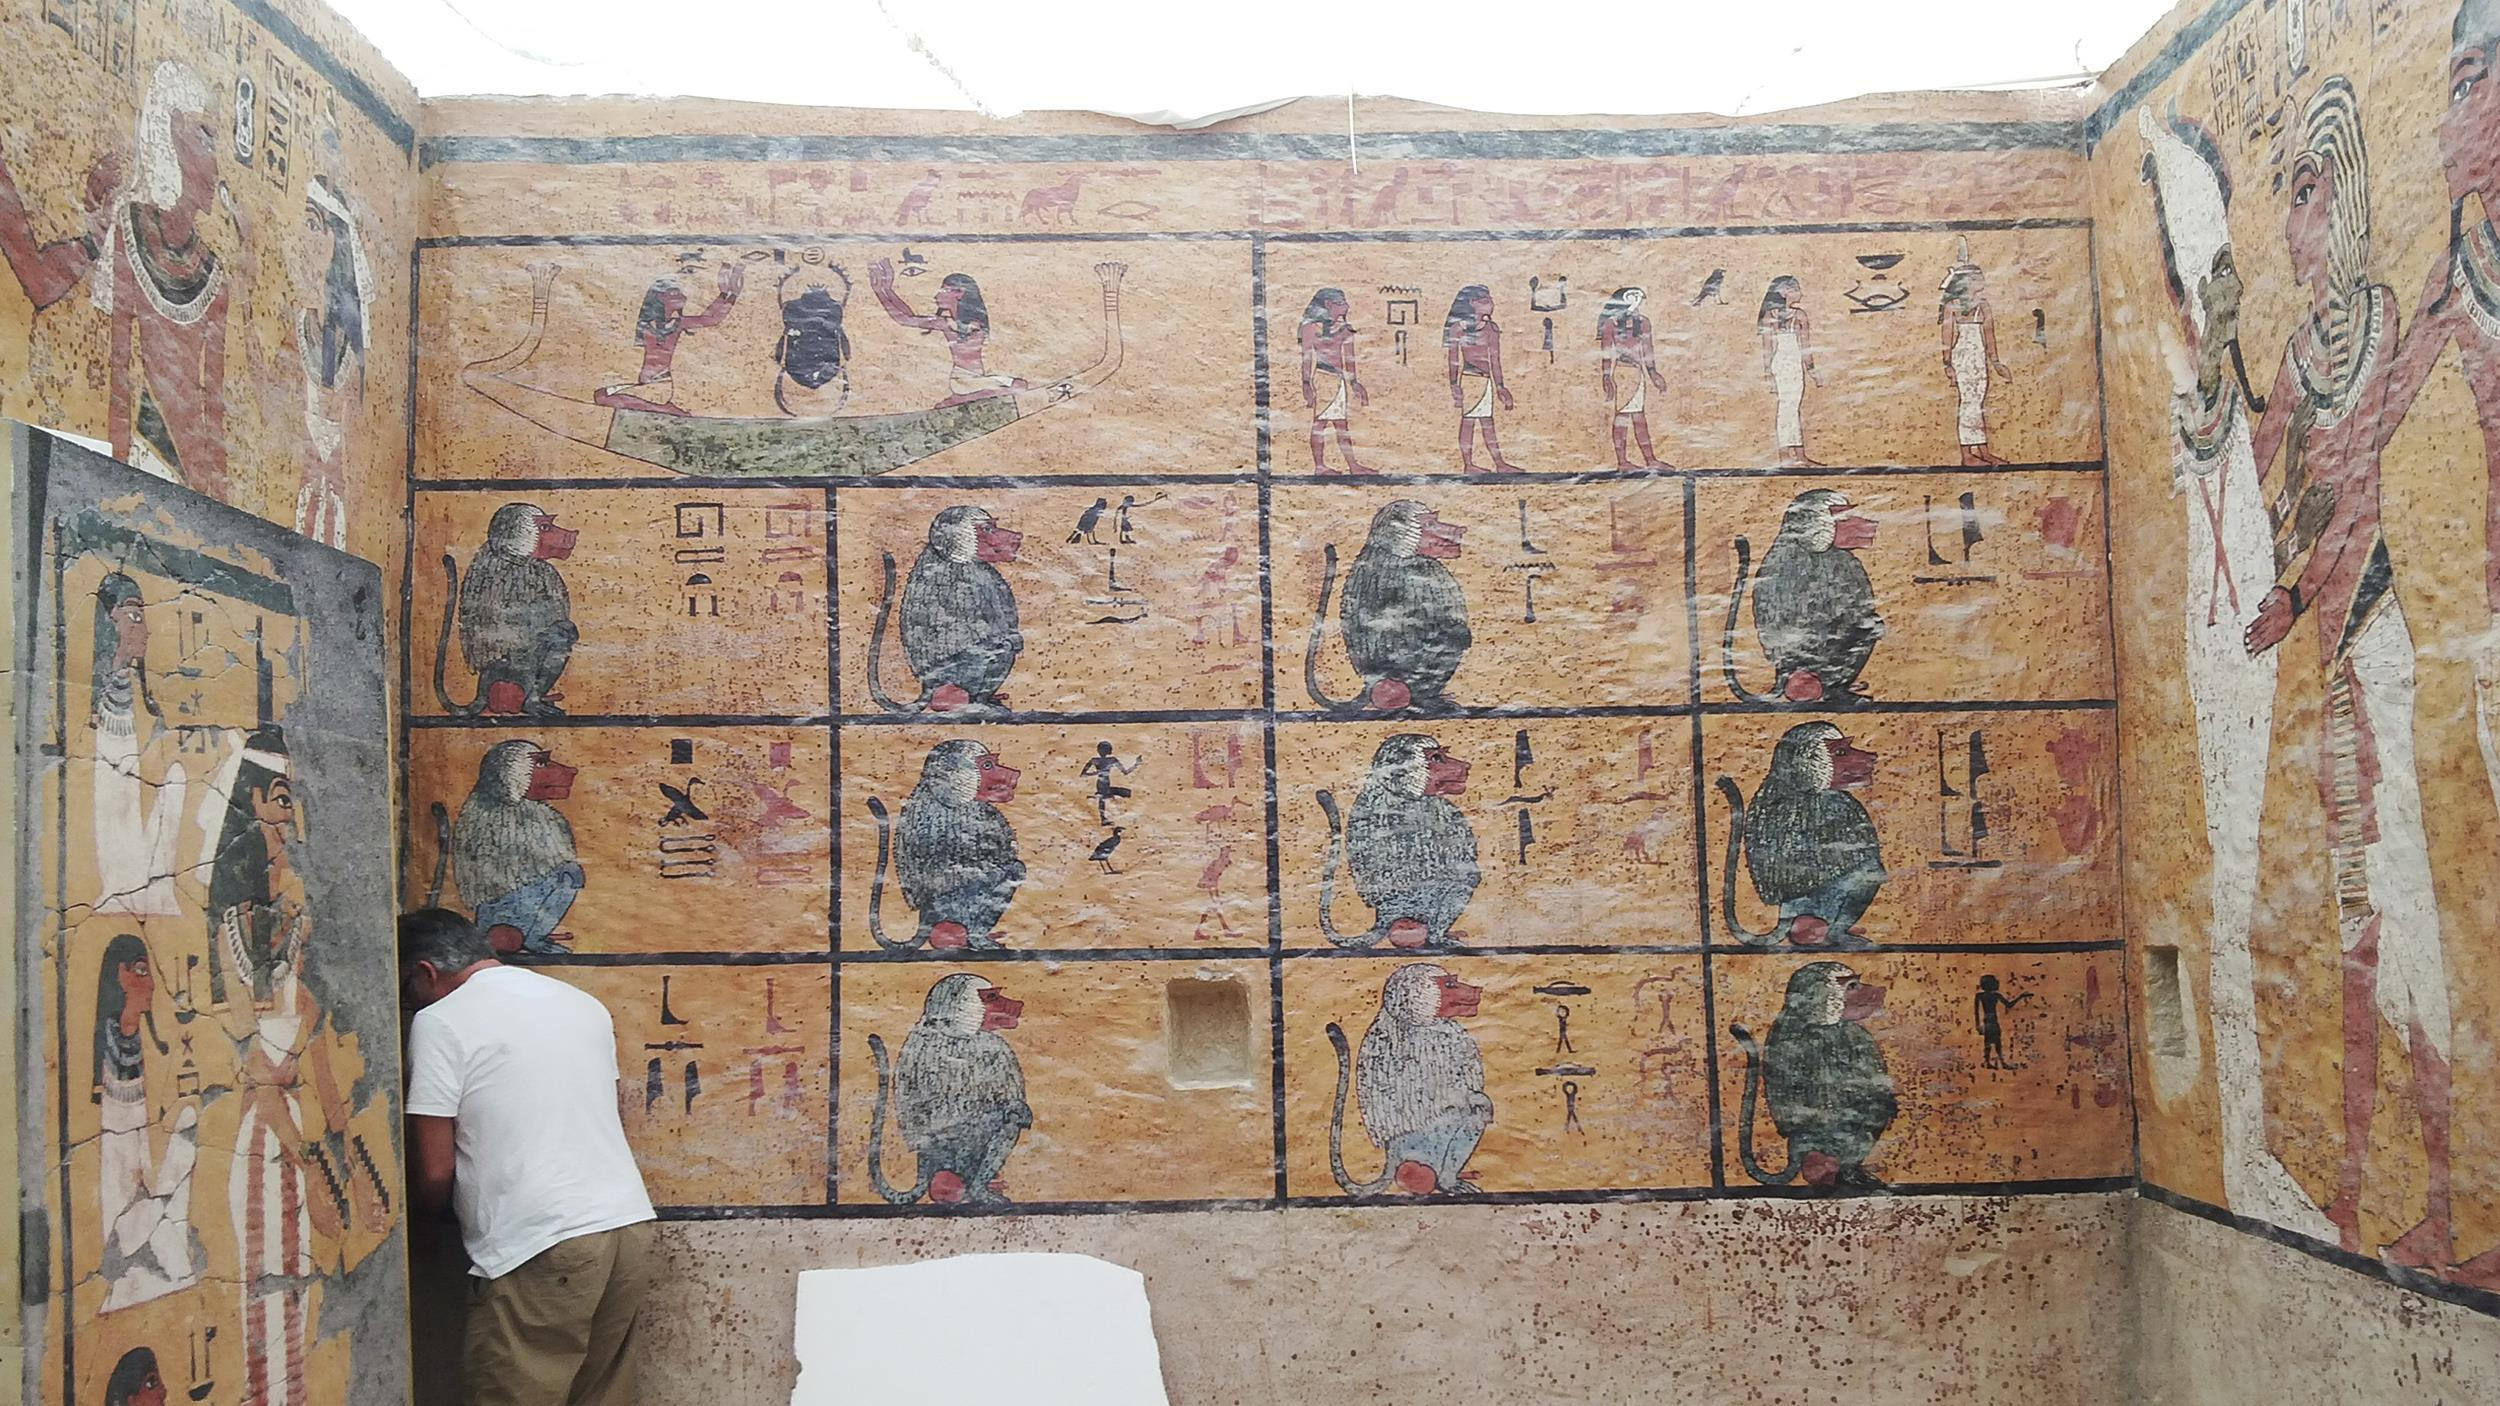 an analysis of the contents of in the tomb of tutankhamen in egypt The golden sarcophagus of king tutankhamun displayed in his burial chamber in the valley of the kings, egypt, on november 28, 2015 efforts to find a secret chamber in his tomb have led nowhere.